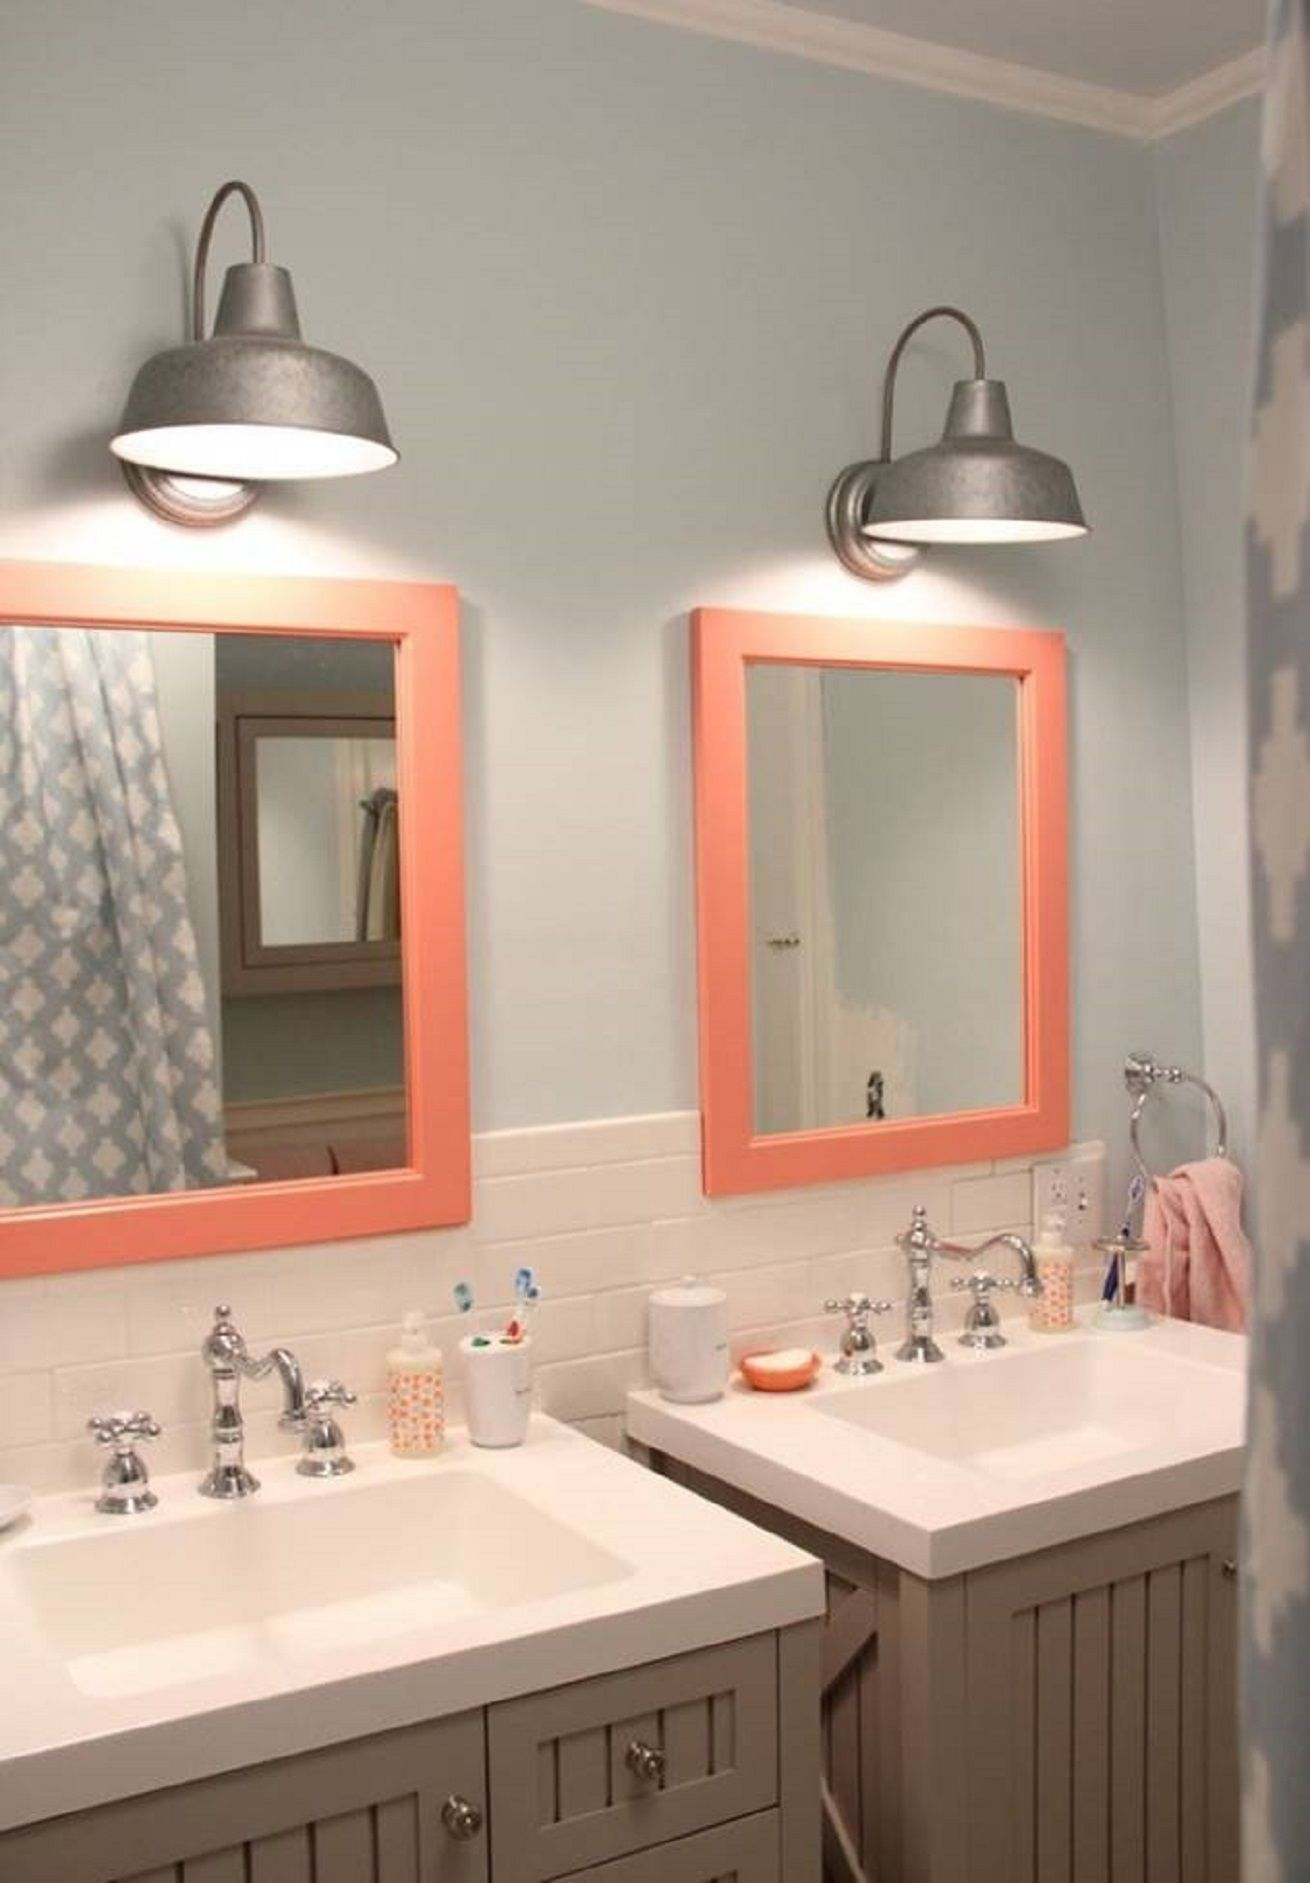 Winsome Lowes Bathroom For Bathroom Interior Looks Classy: Snazzy Lowes  Bathroom Decor With Peach Wall